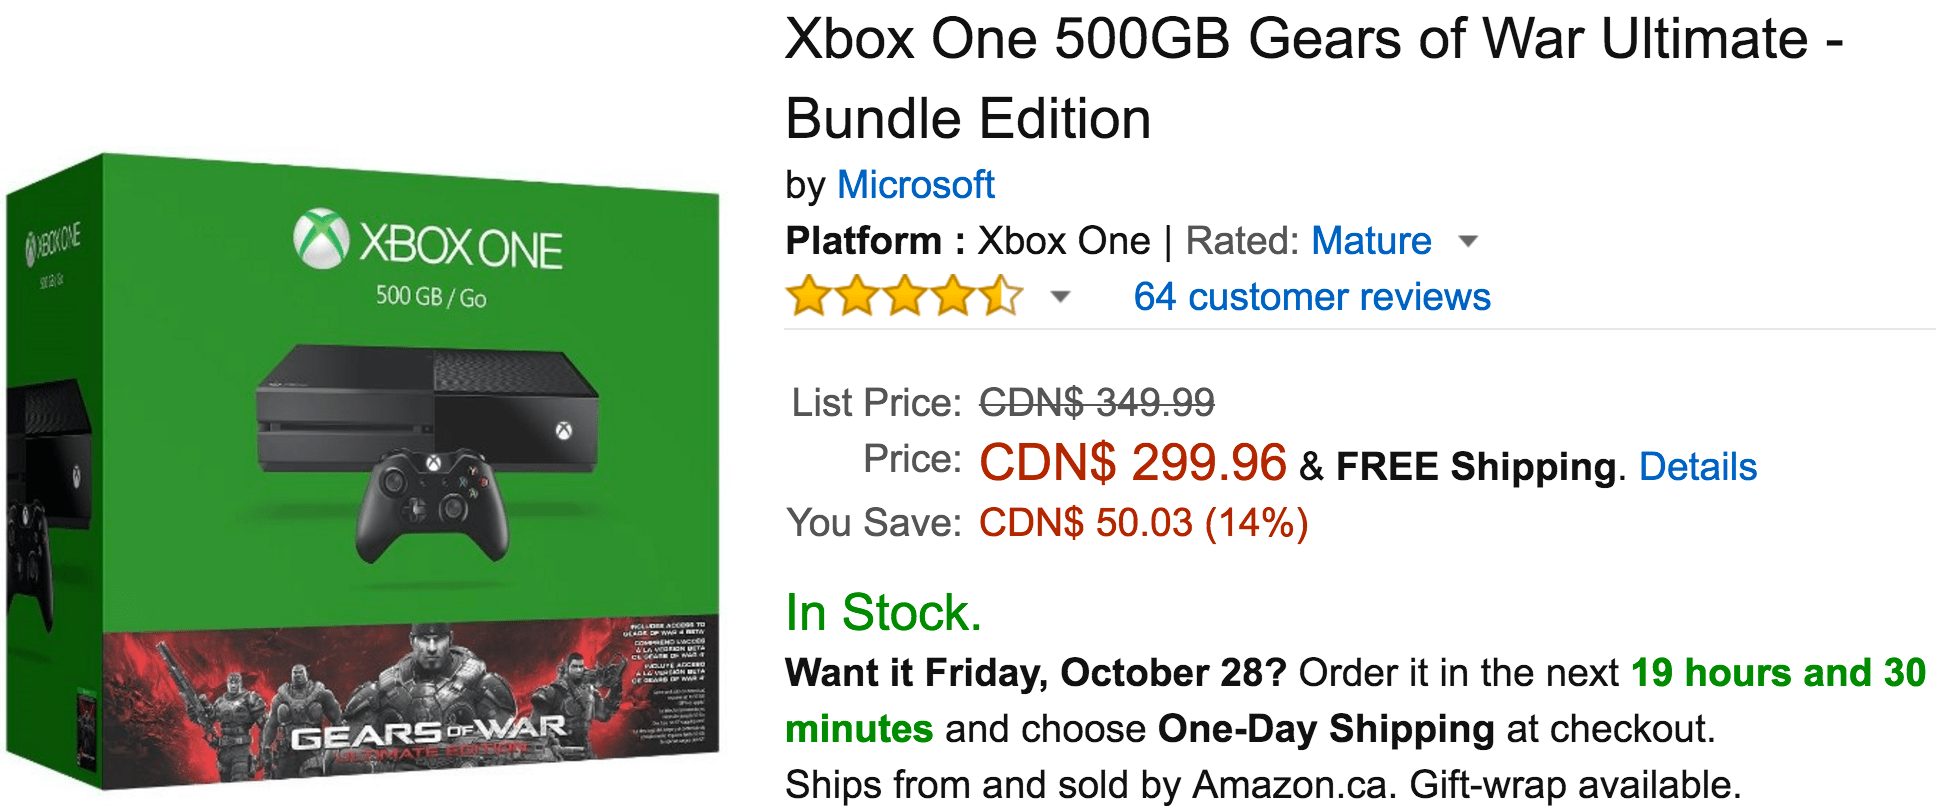 Amazon Canada Deals Of The Day: Save 14% On Xbox One 500GB Gears of War Ultimate – Bundle Edition, 29% On VTech Touch and Learn Activity Desk & More Deals